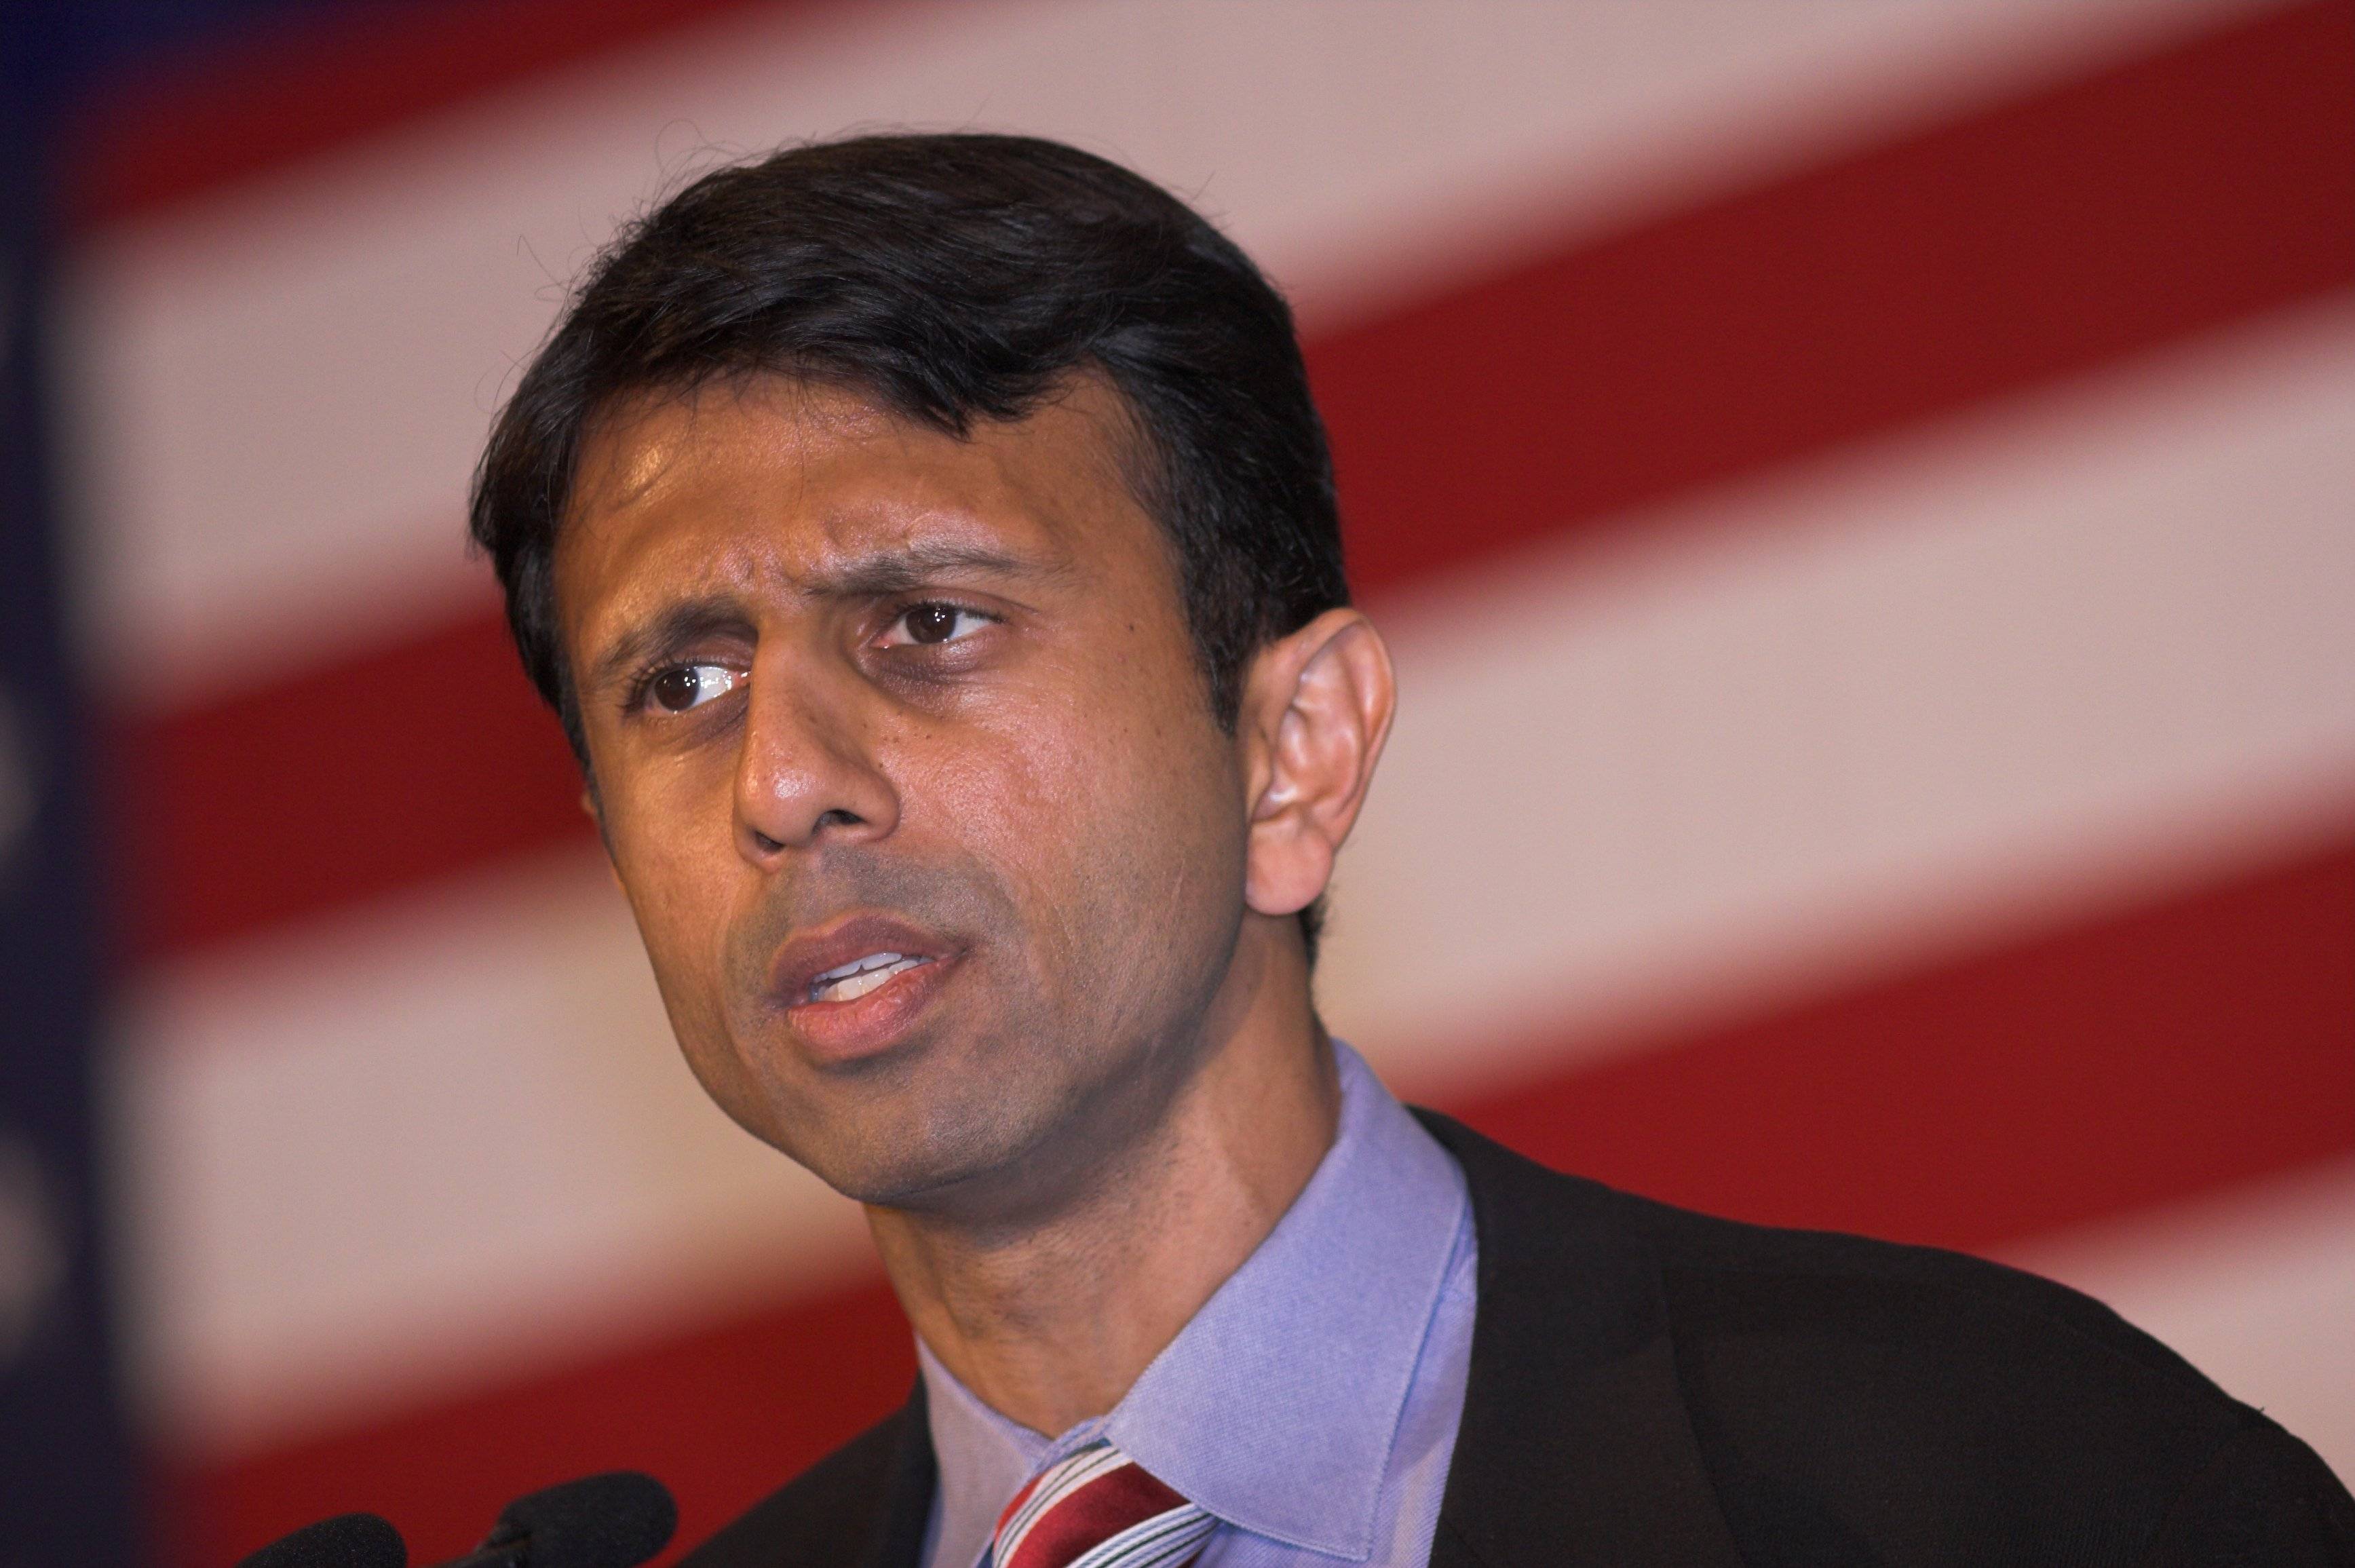 Mitch Landrieu issues anti-discrimination order to head off Jindal backlash